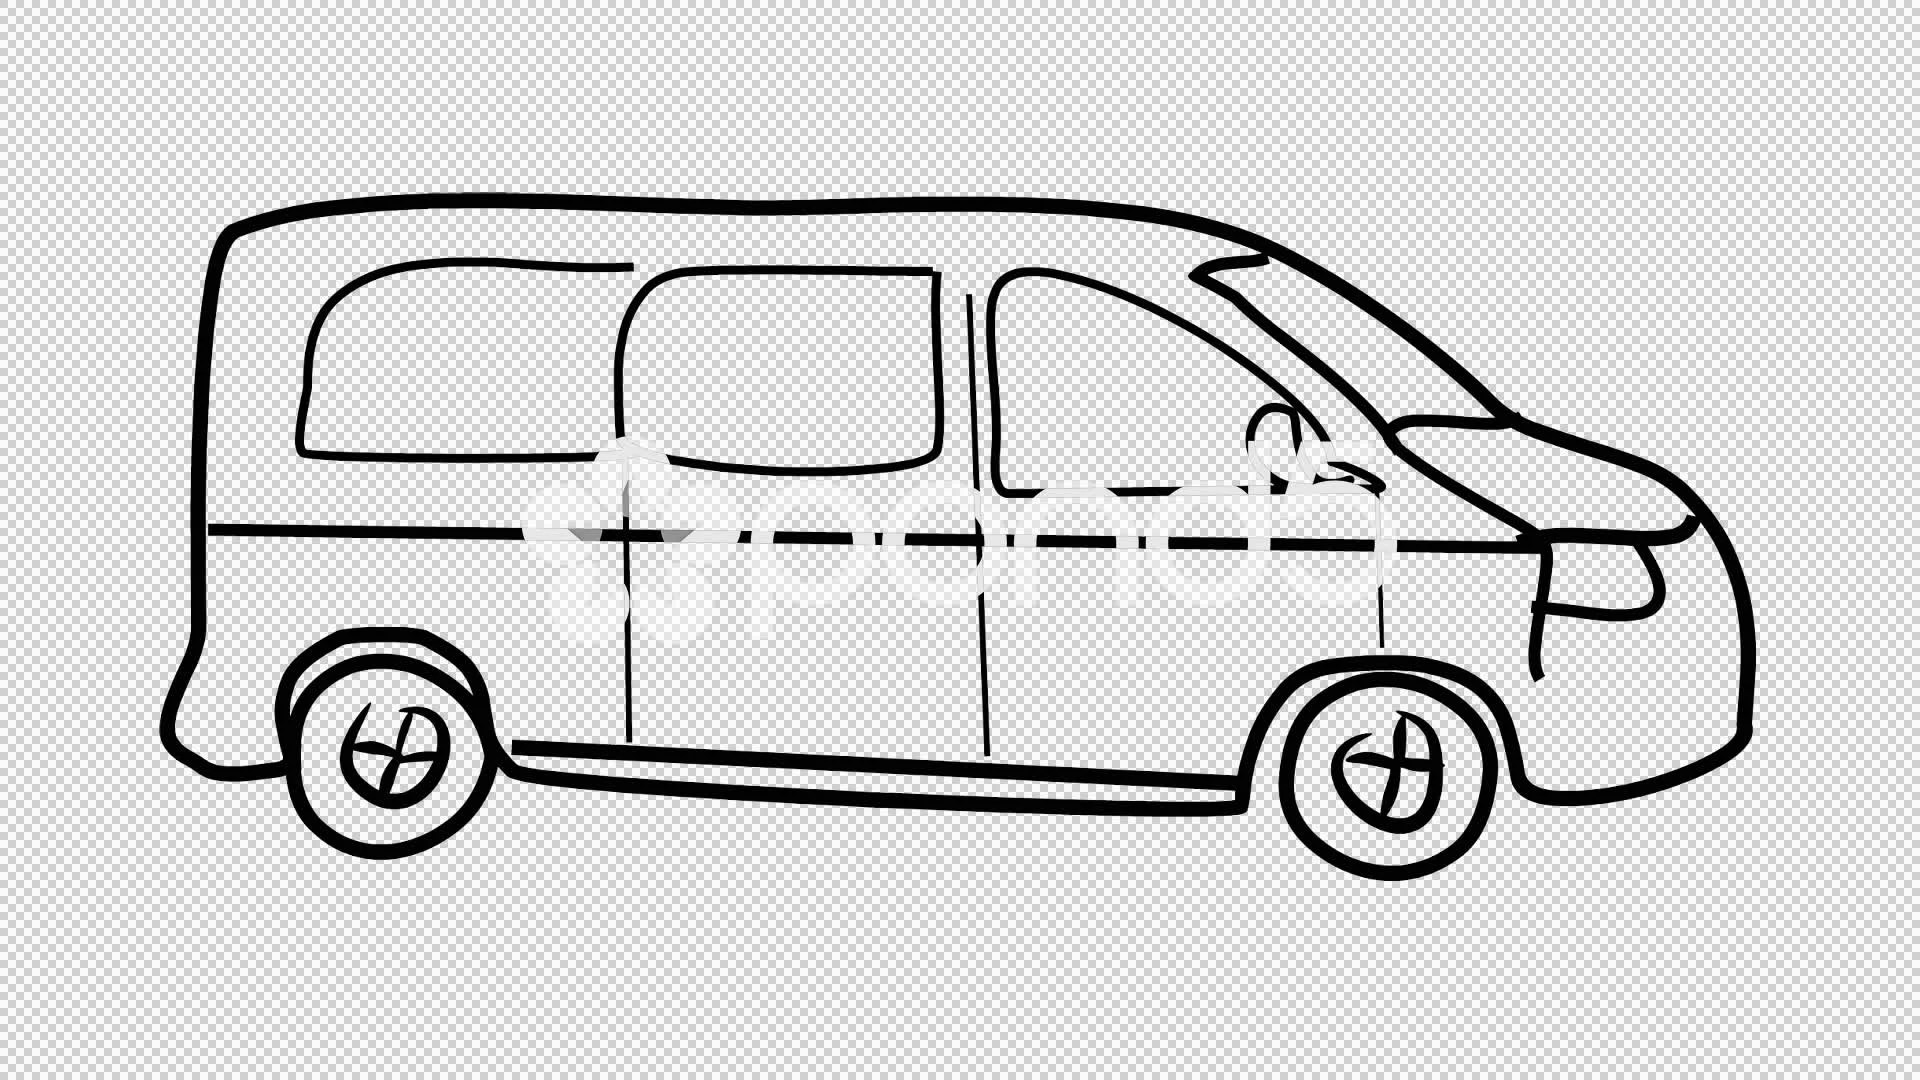 Van Cartoon Illustration Hand Drawn Animation With